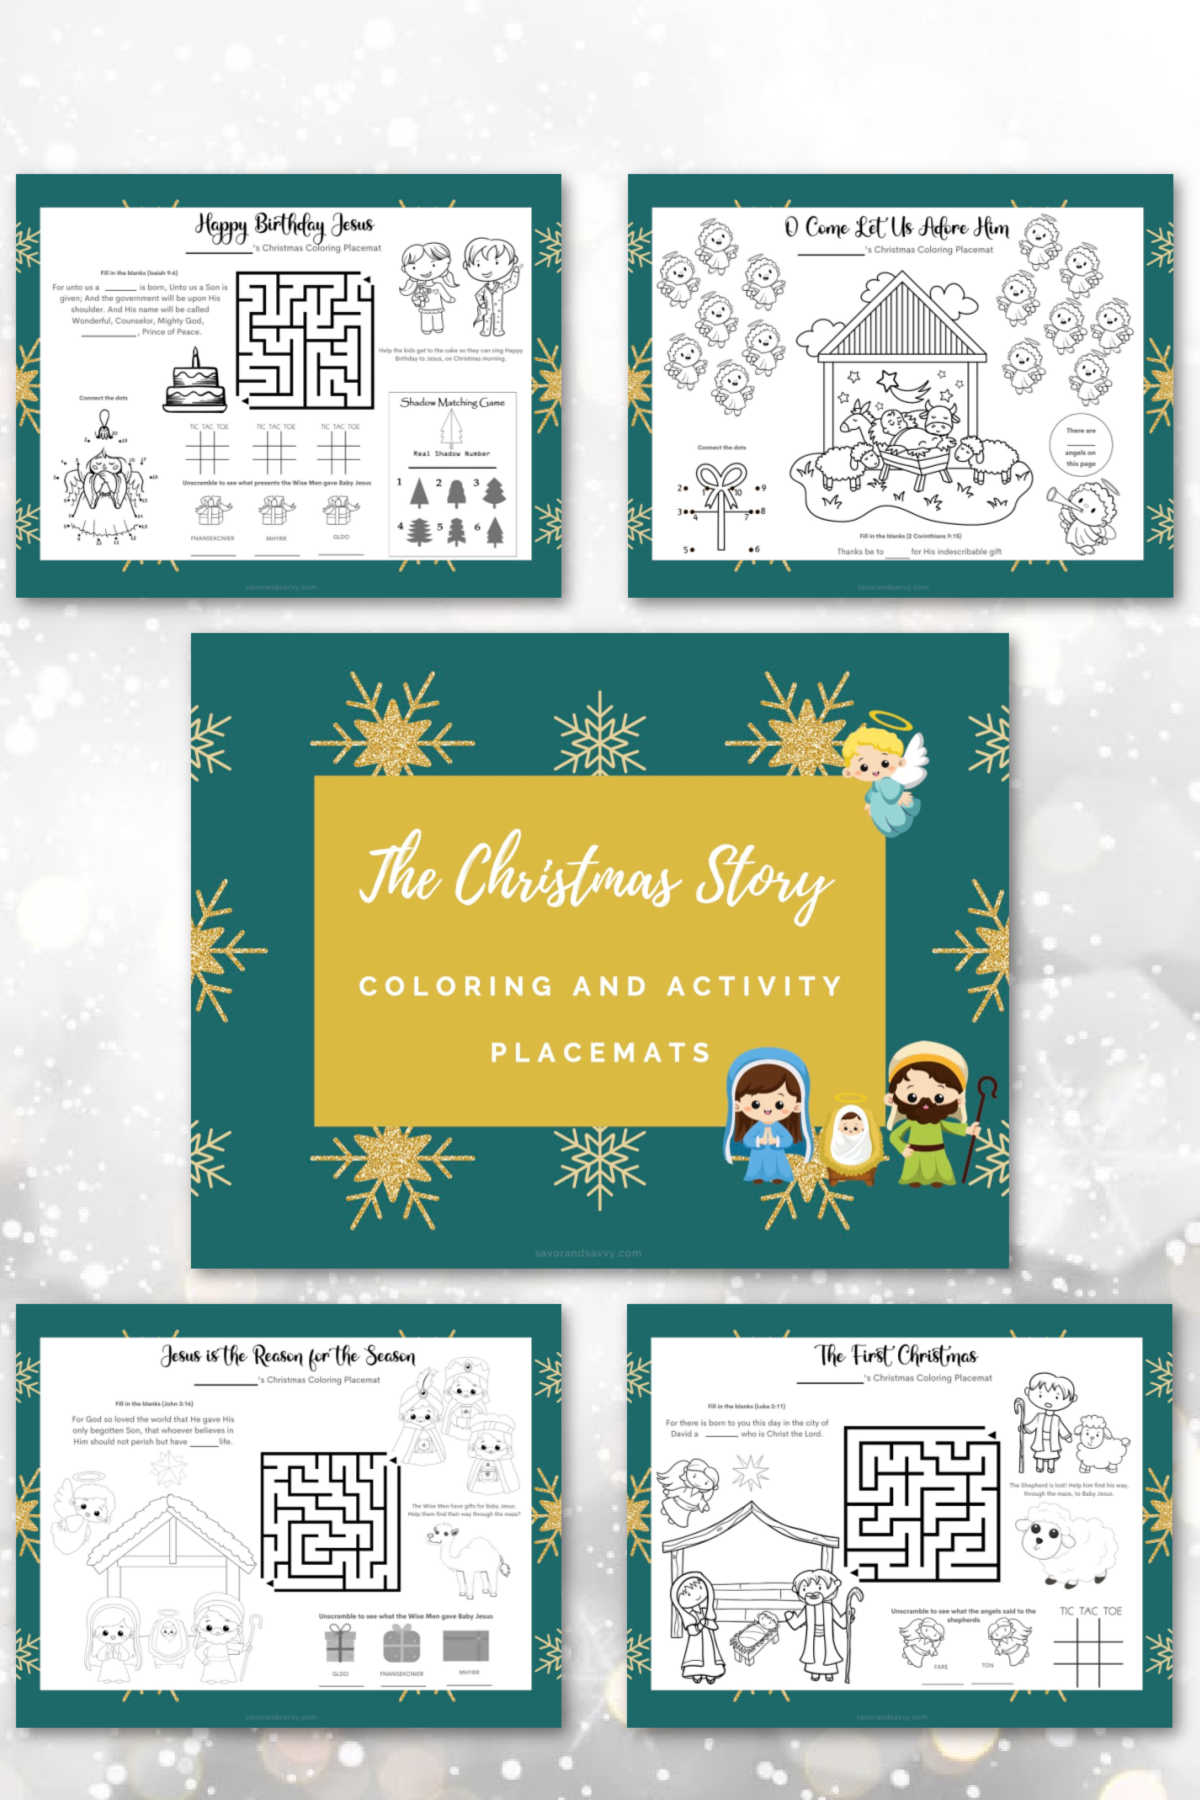 five free printables that are perfect for coloring and each has different activities that help teach the birth of Christ.